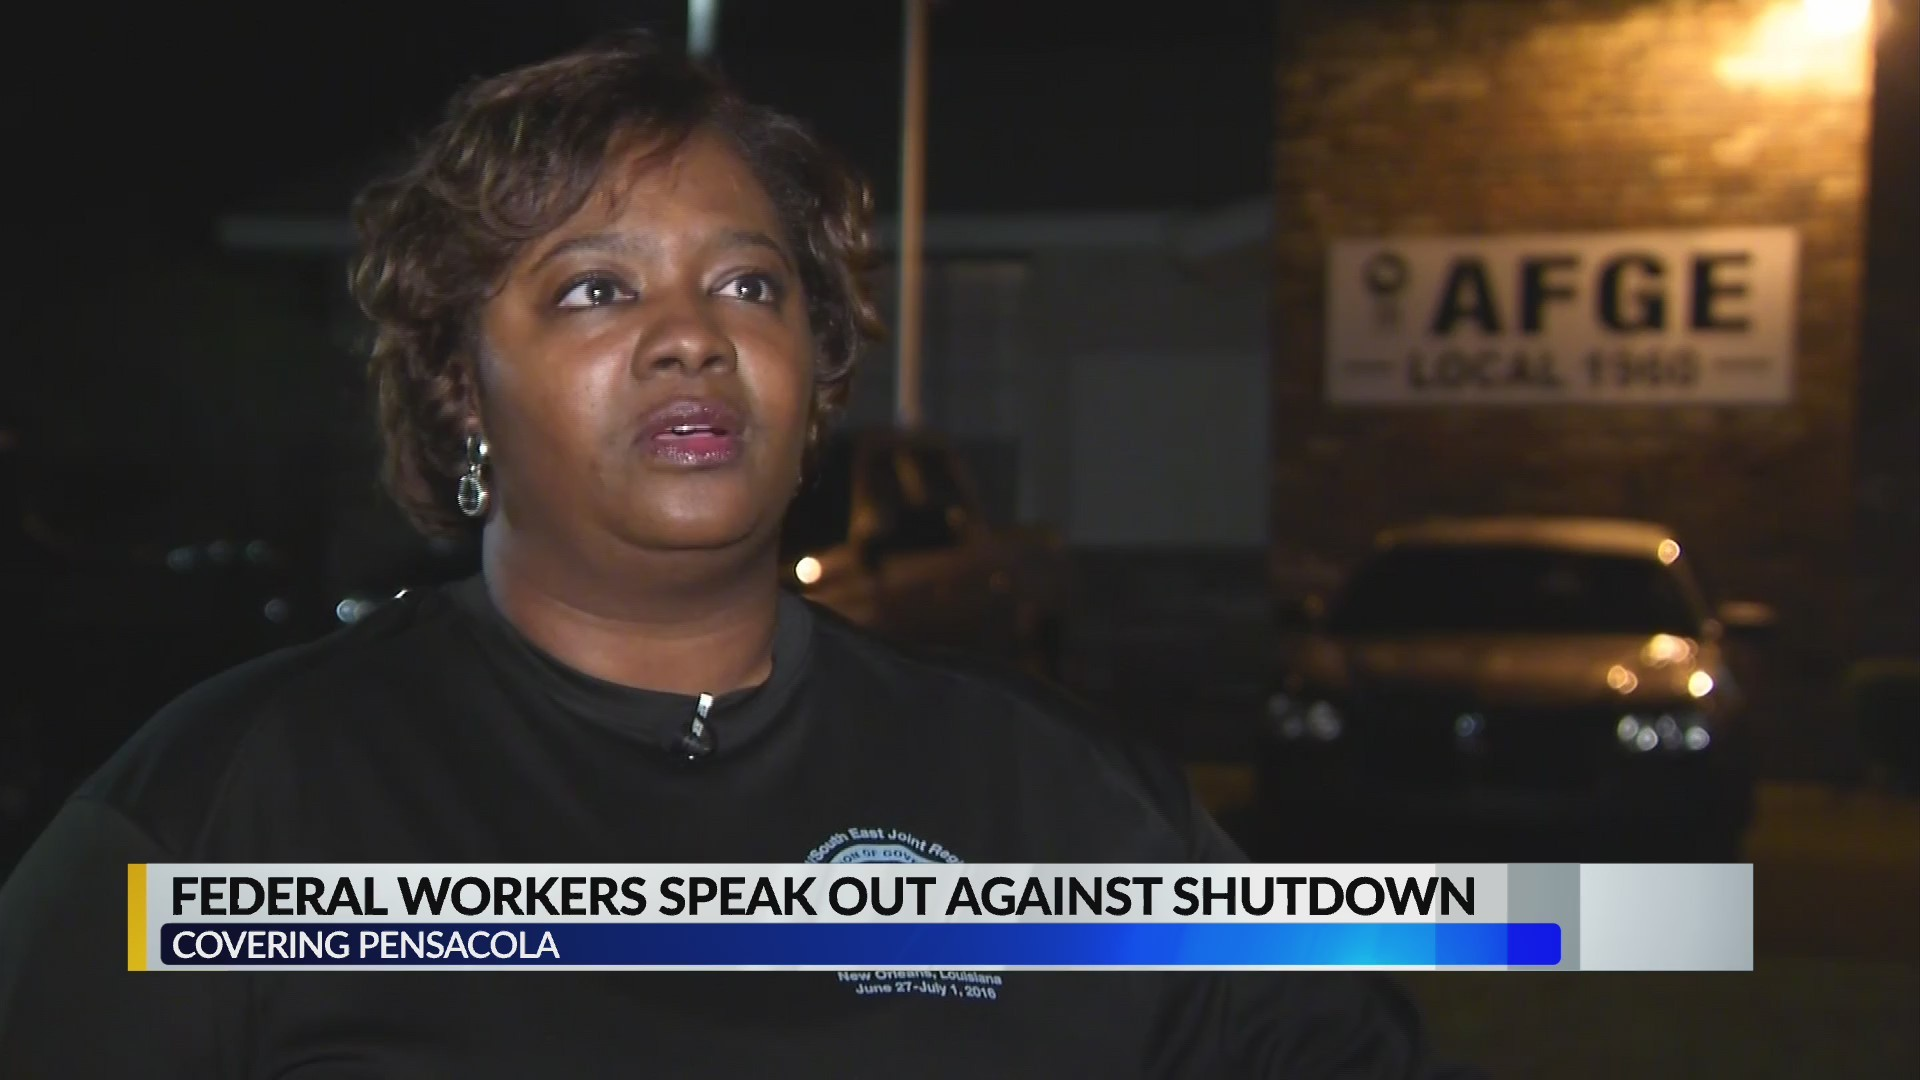 VIDEO: Local federal workers, union leaders speak out against shutdown